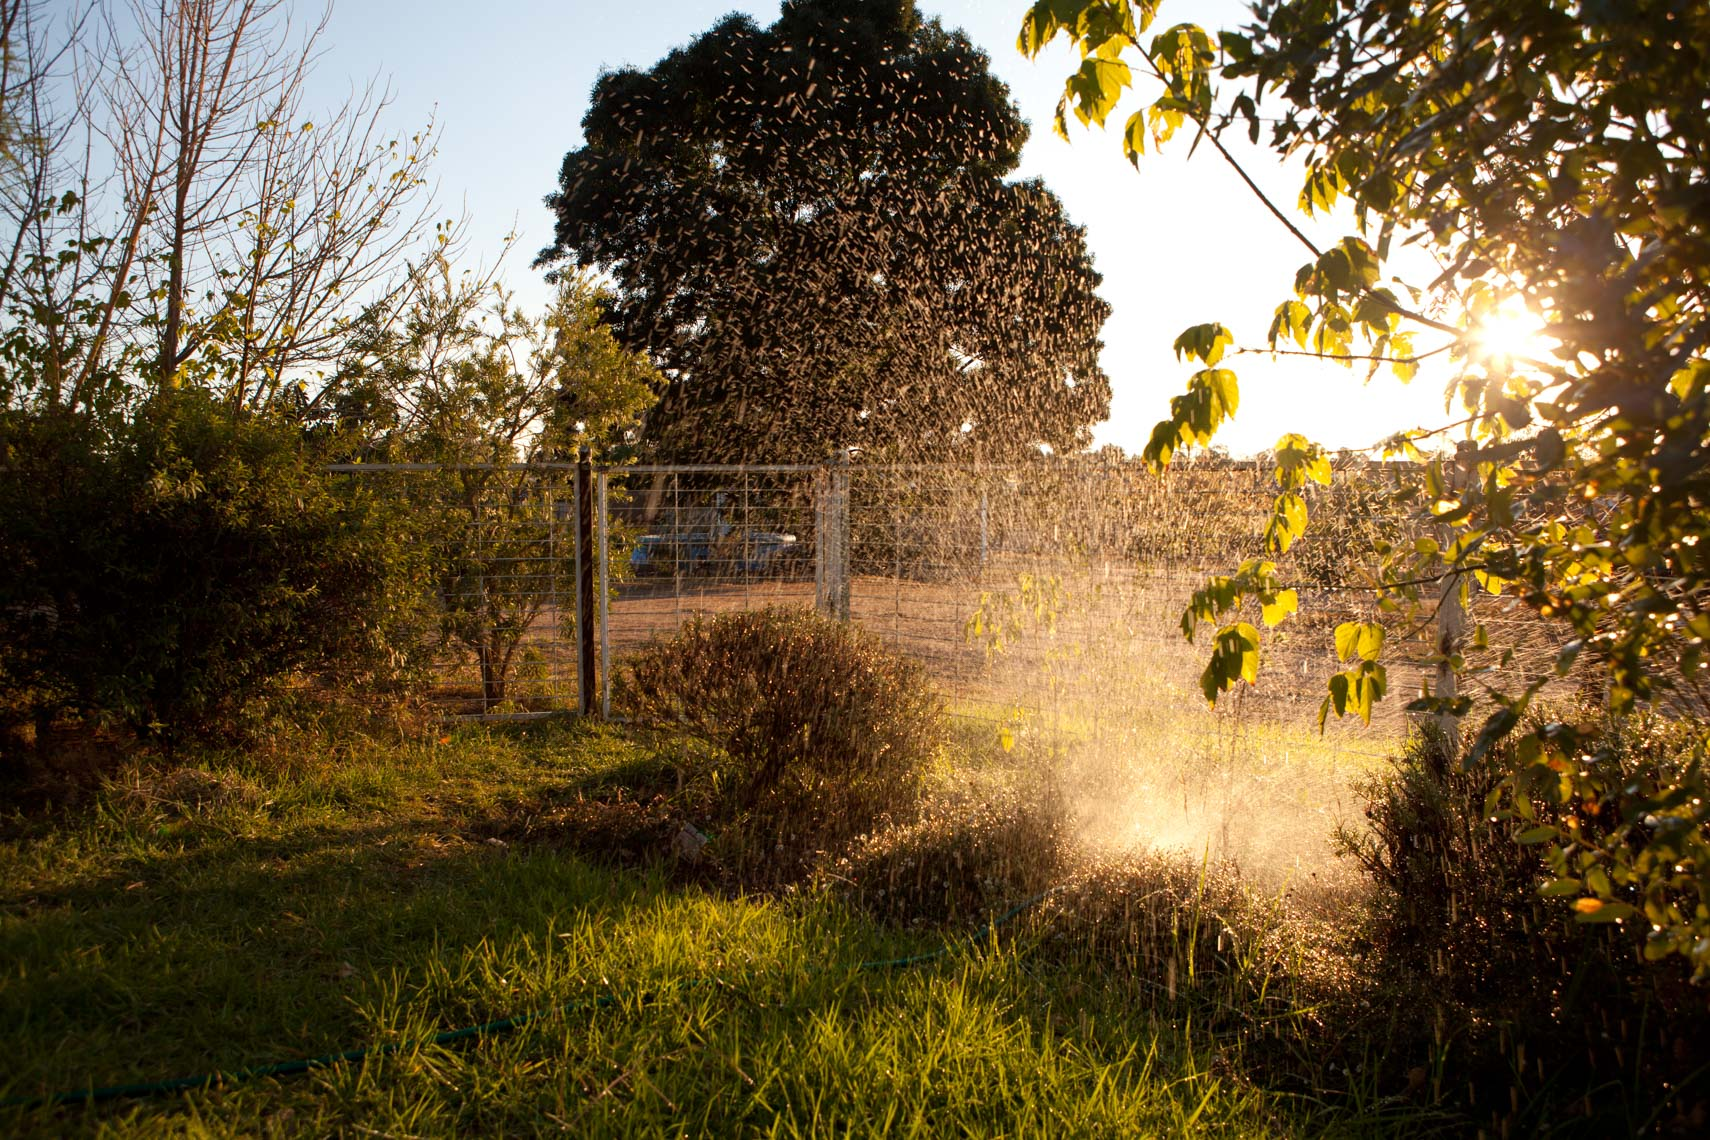 22_WEB_Landscapes_05_Sprinkler_1558_10